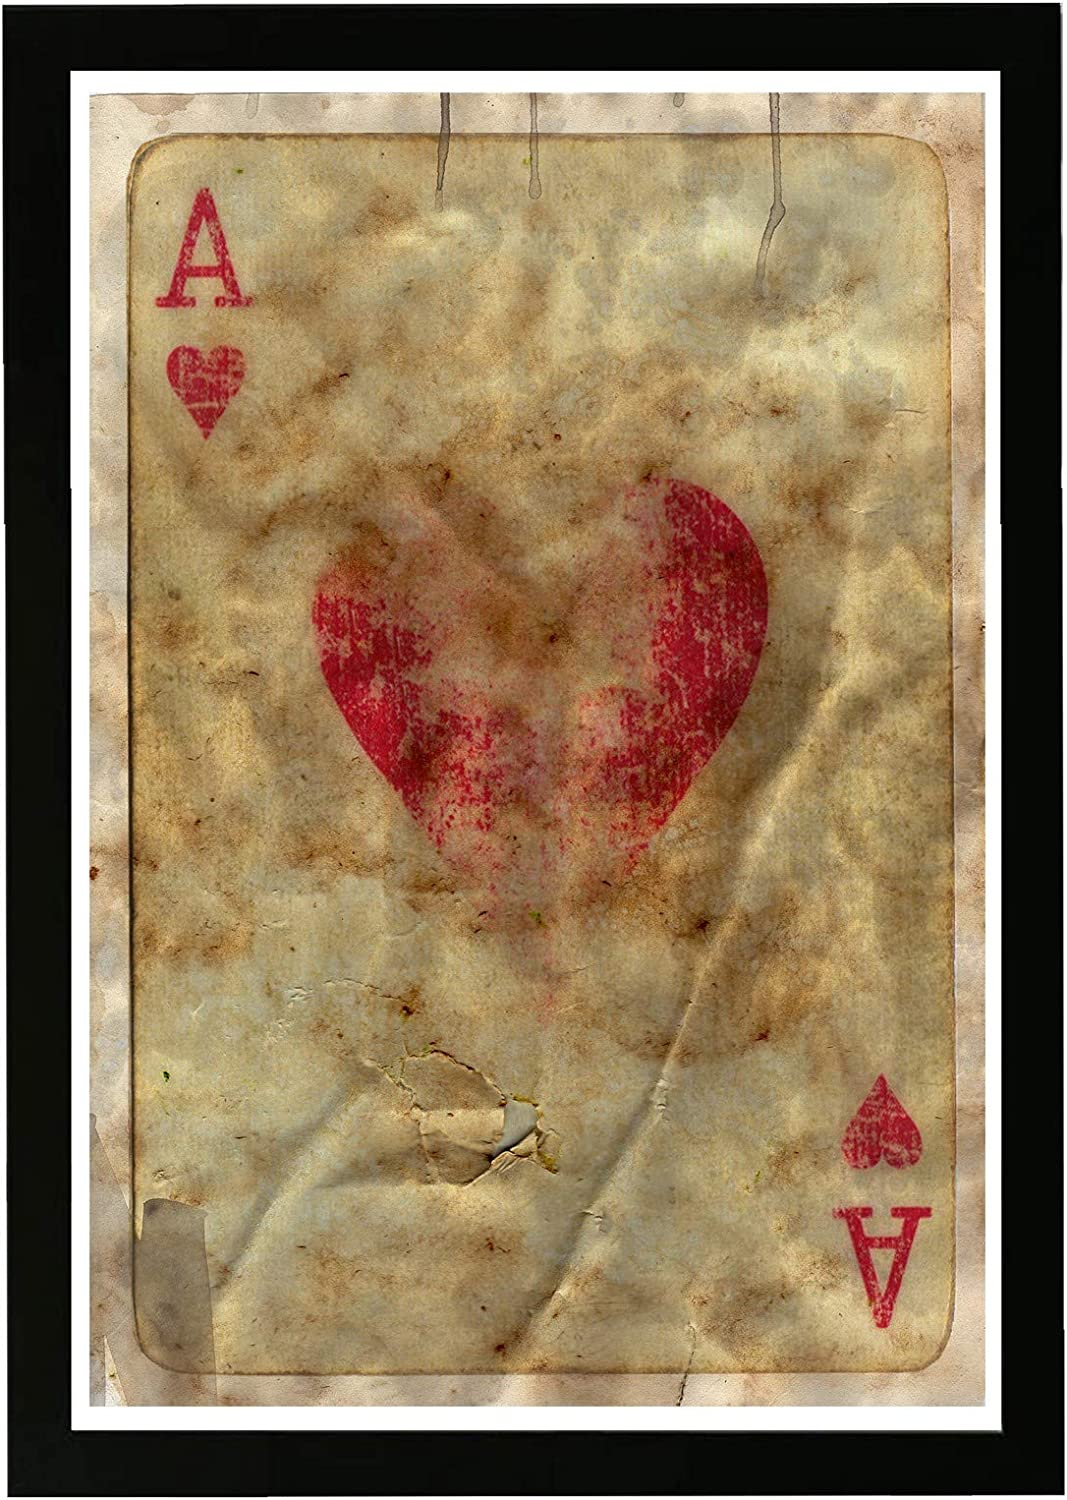 Amazon Com Wynwood Studio Entertainment And Hobbies Framed Wall Art Prints Ace Of Hearts Home Décor 13 X 19 Brown Red Posters Prints